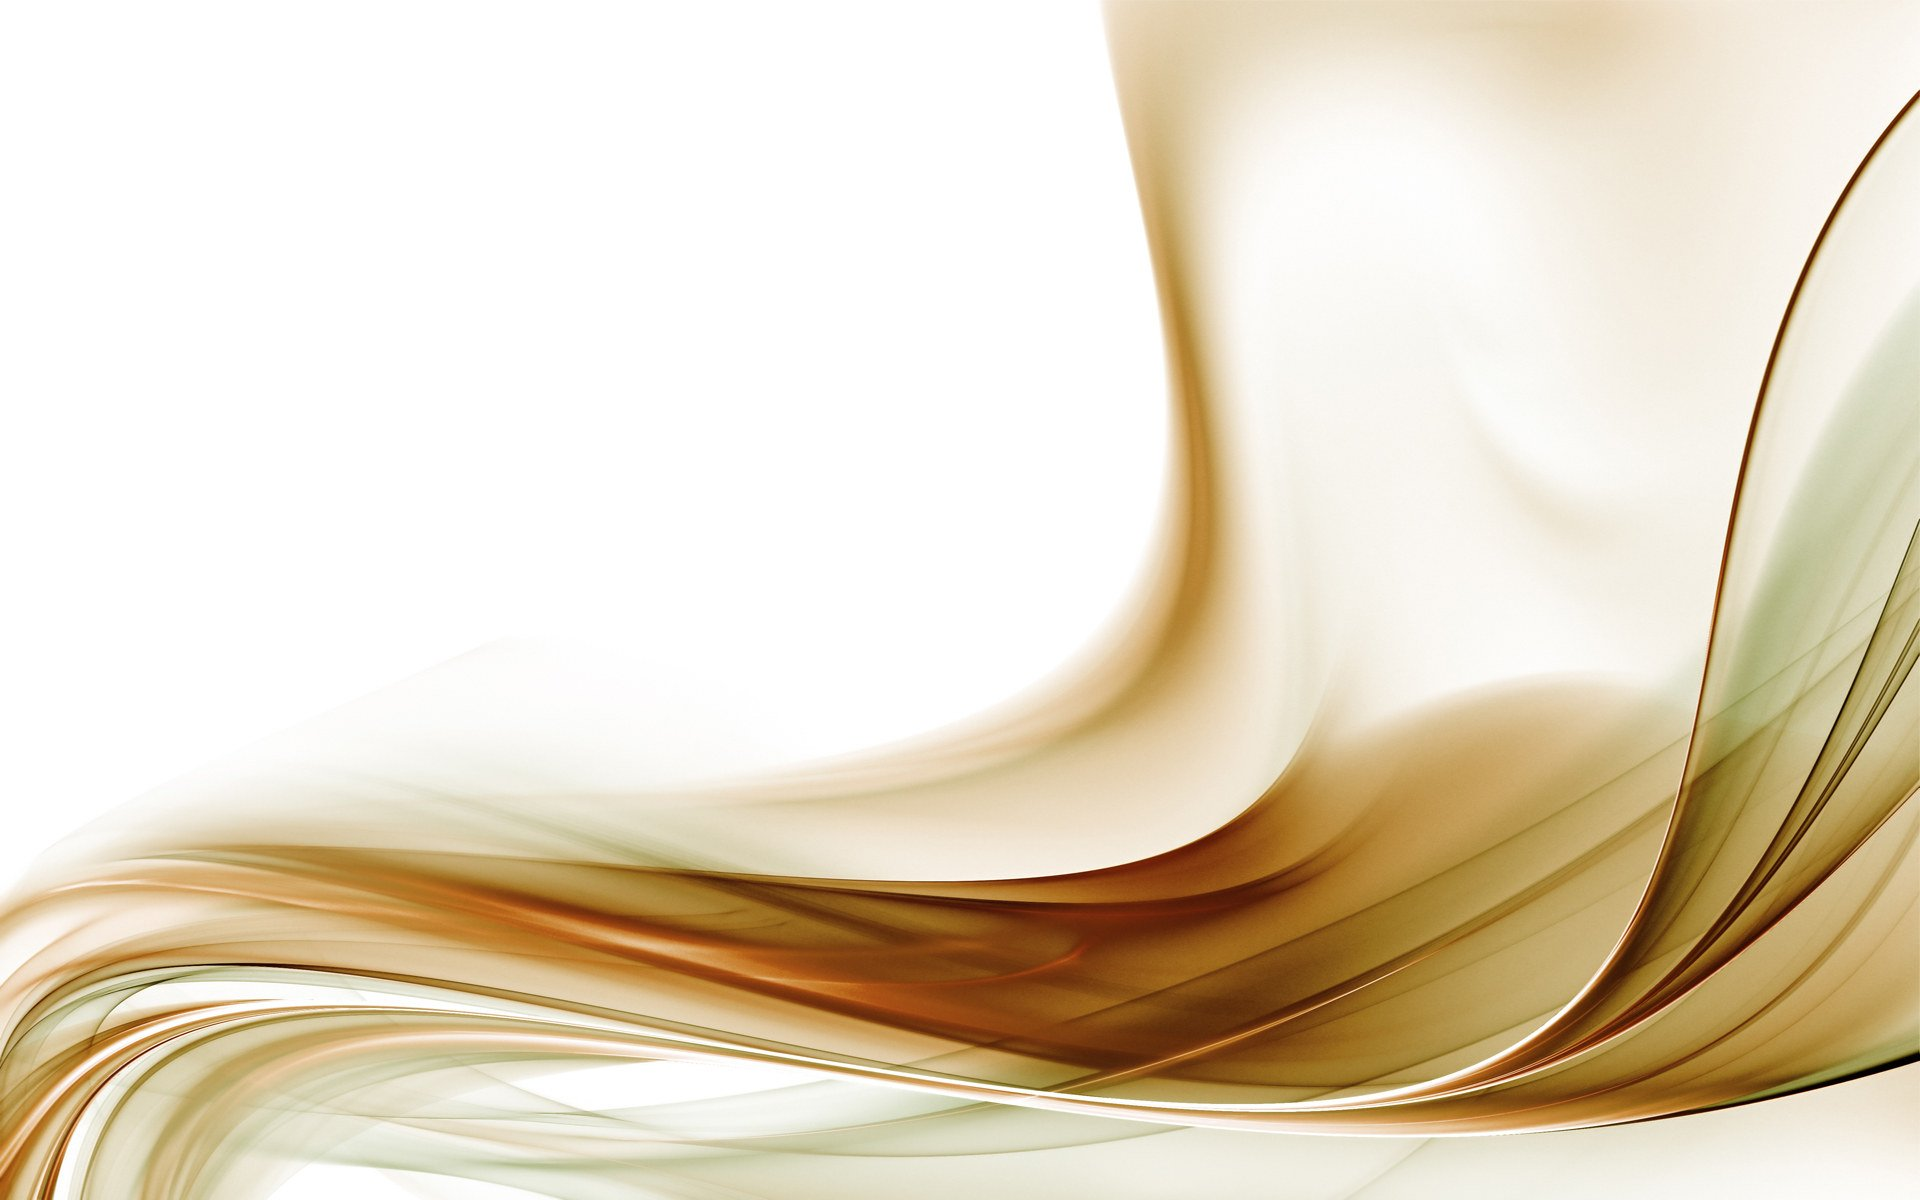 Abstract Gold Search Background Backgrounds Cartoon Colour wallpapers 1920x1200